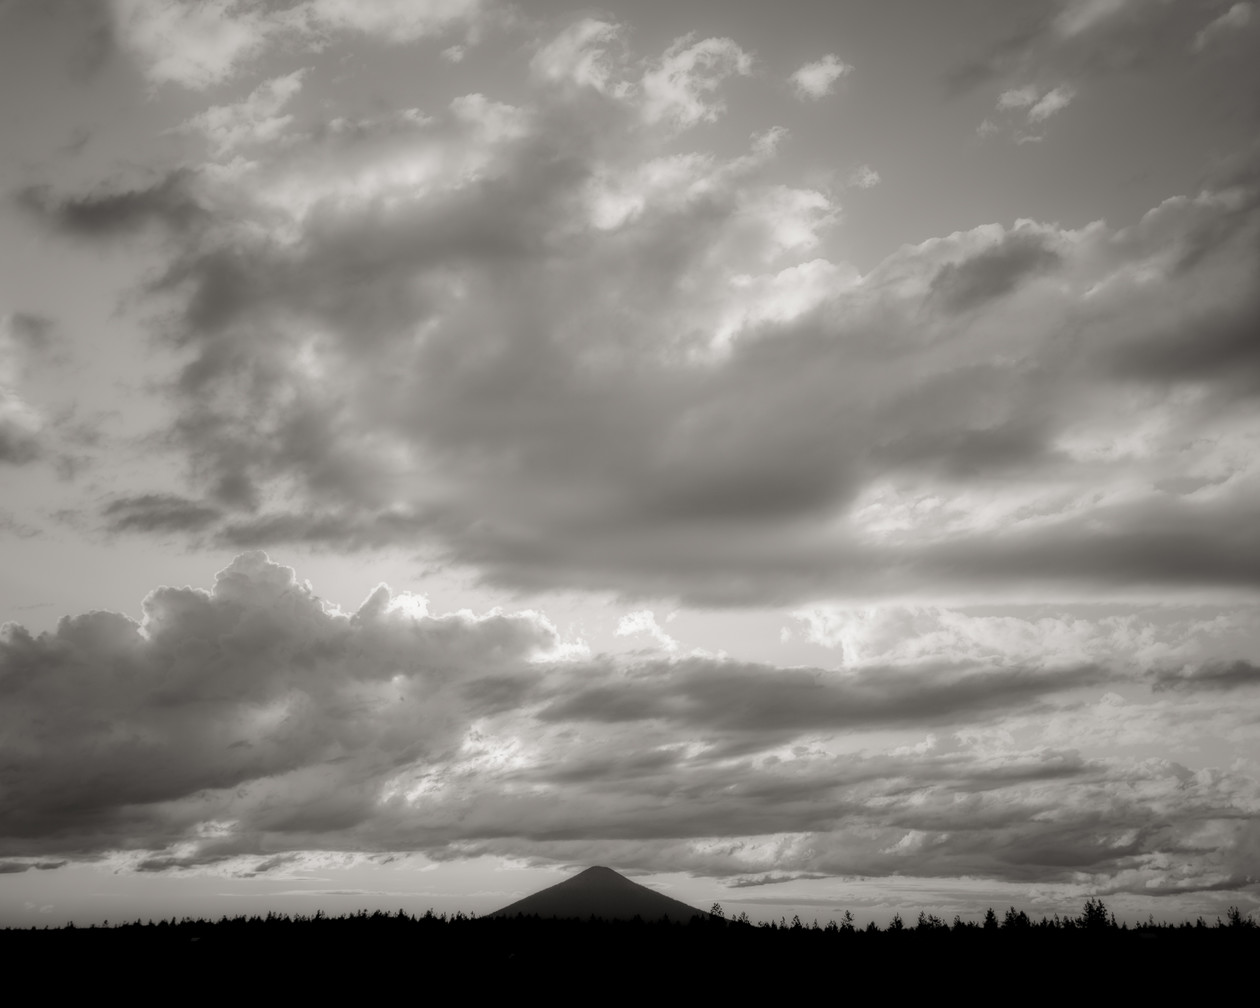 Last Light, Oregon (2019) by Jeffrey Conley